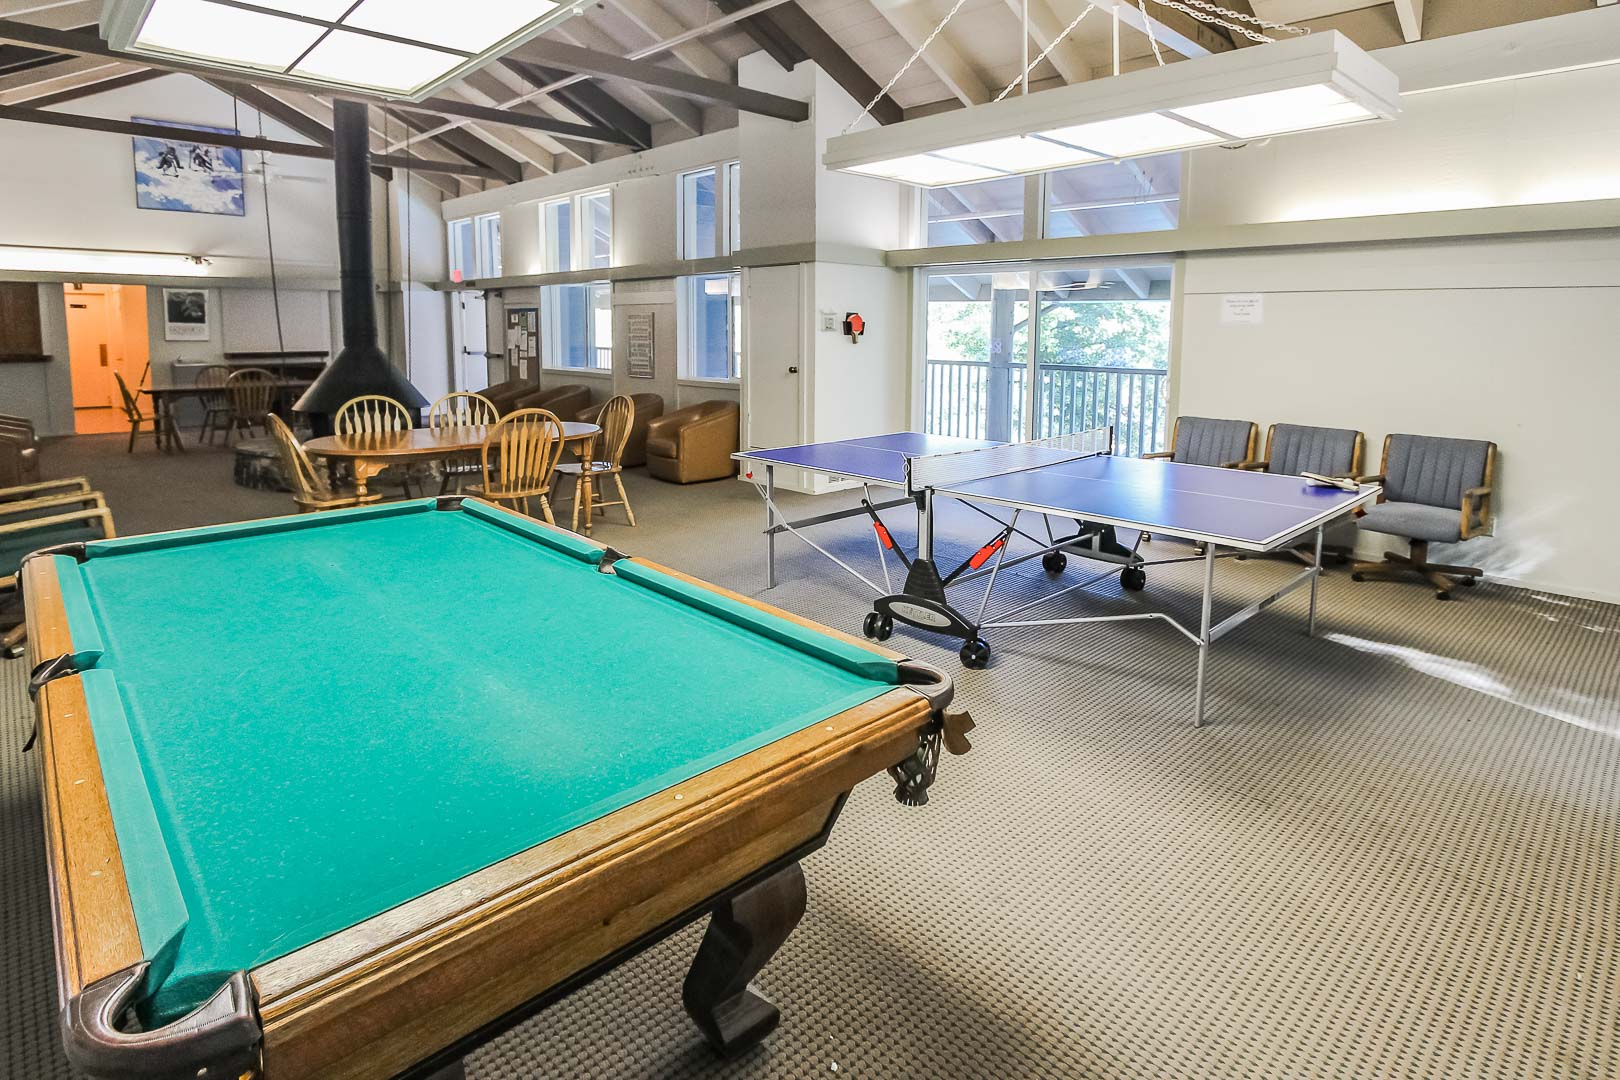 Game room for families to enjoy at VRI's Lake Arrowhead Chalets in California.